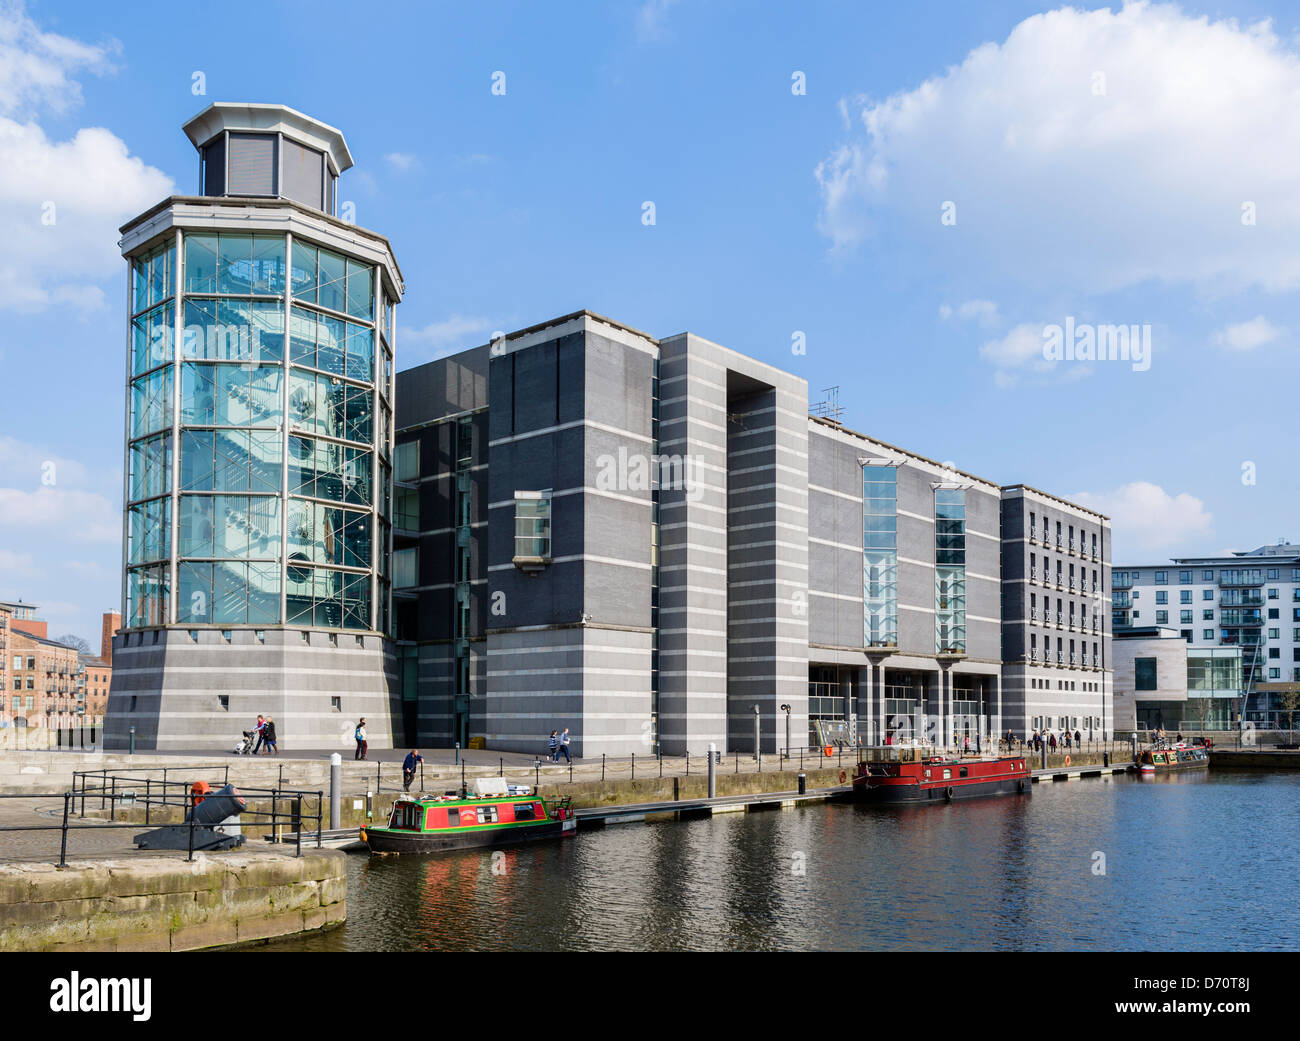 The Royal Armouries Museum at Clarence Dock, Leeds, West Yorkshire, UK - Stock Image